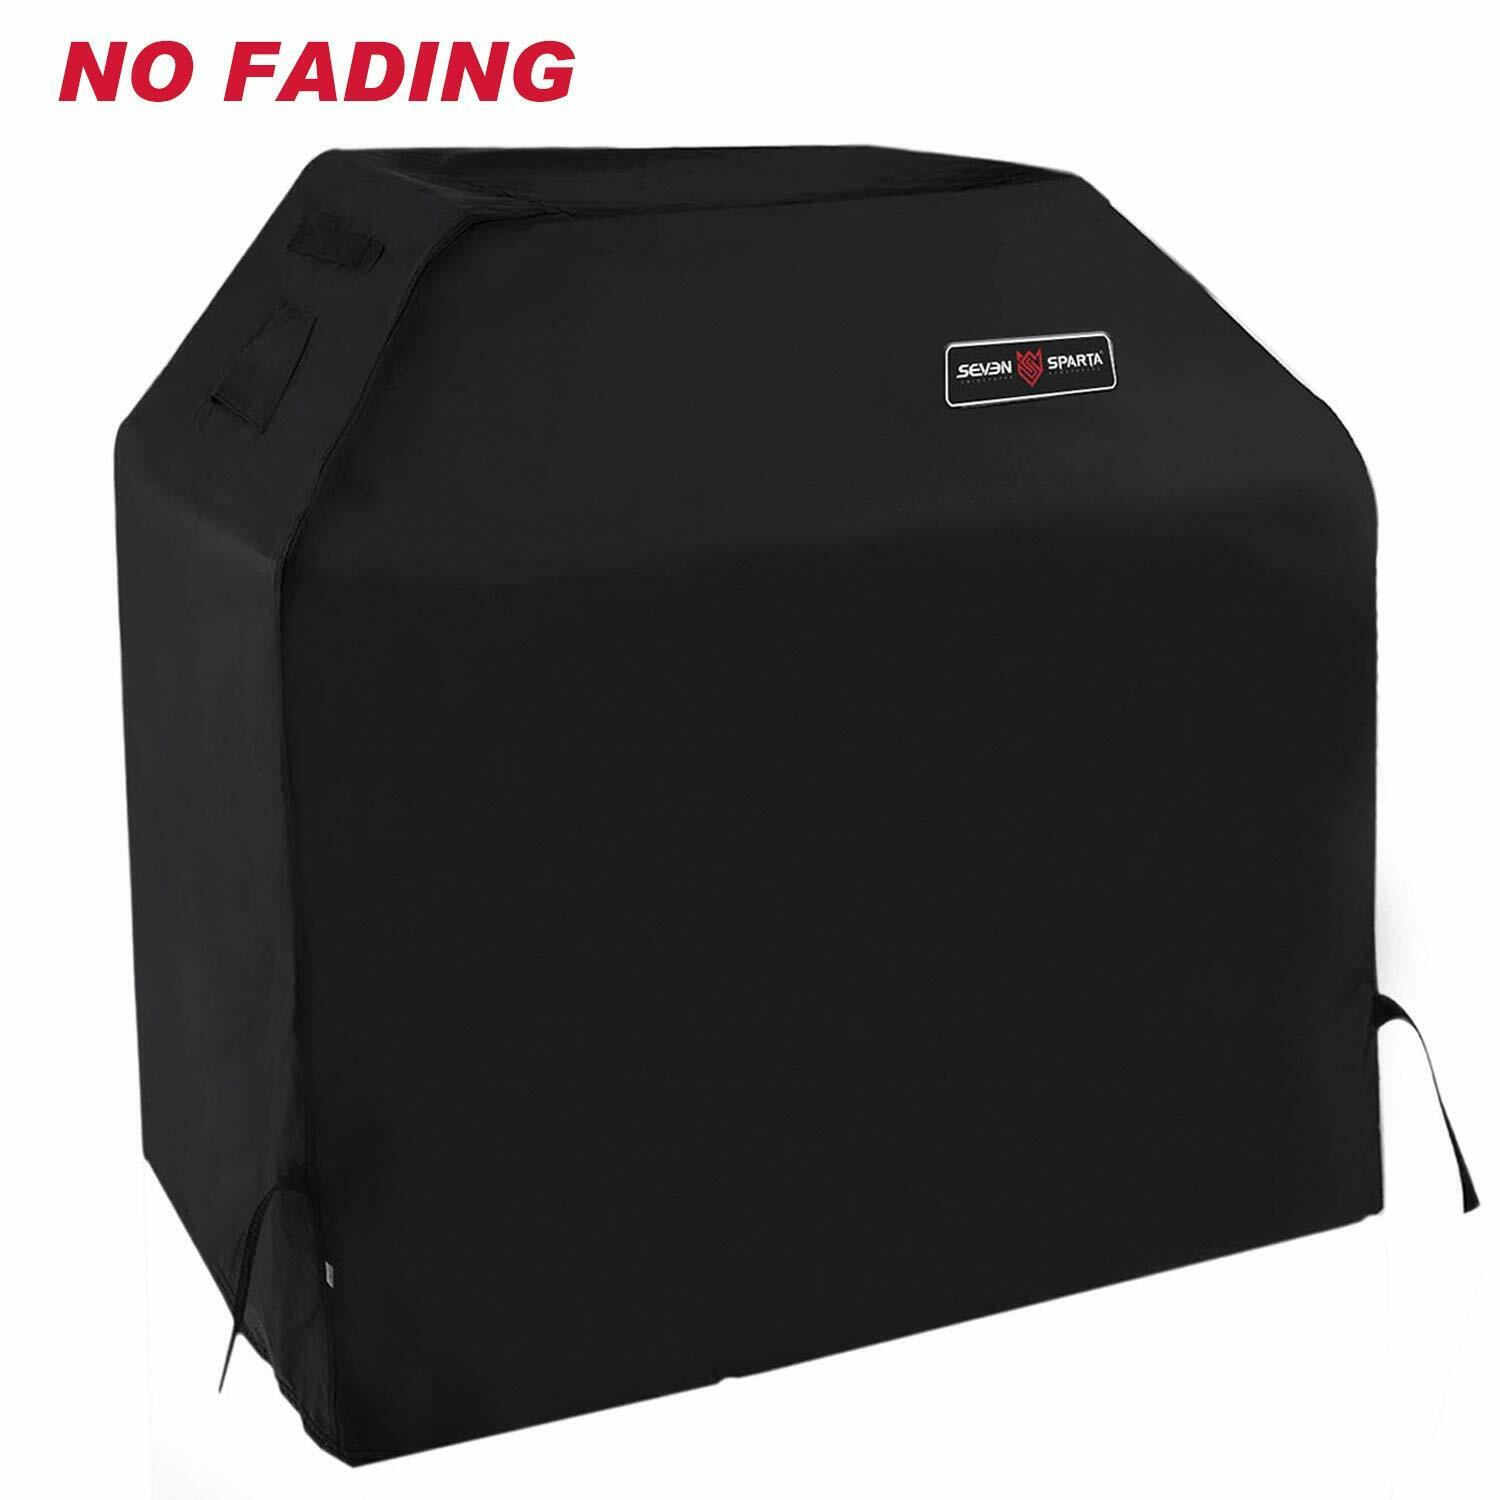 BBQ Gas Grill Cover for Weber Genesis 300 Series, Genesis II